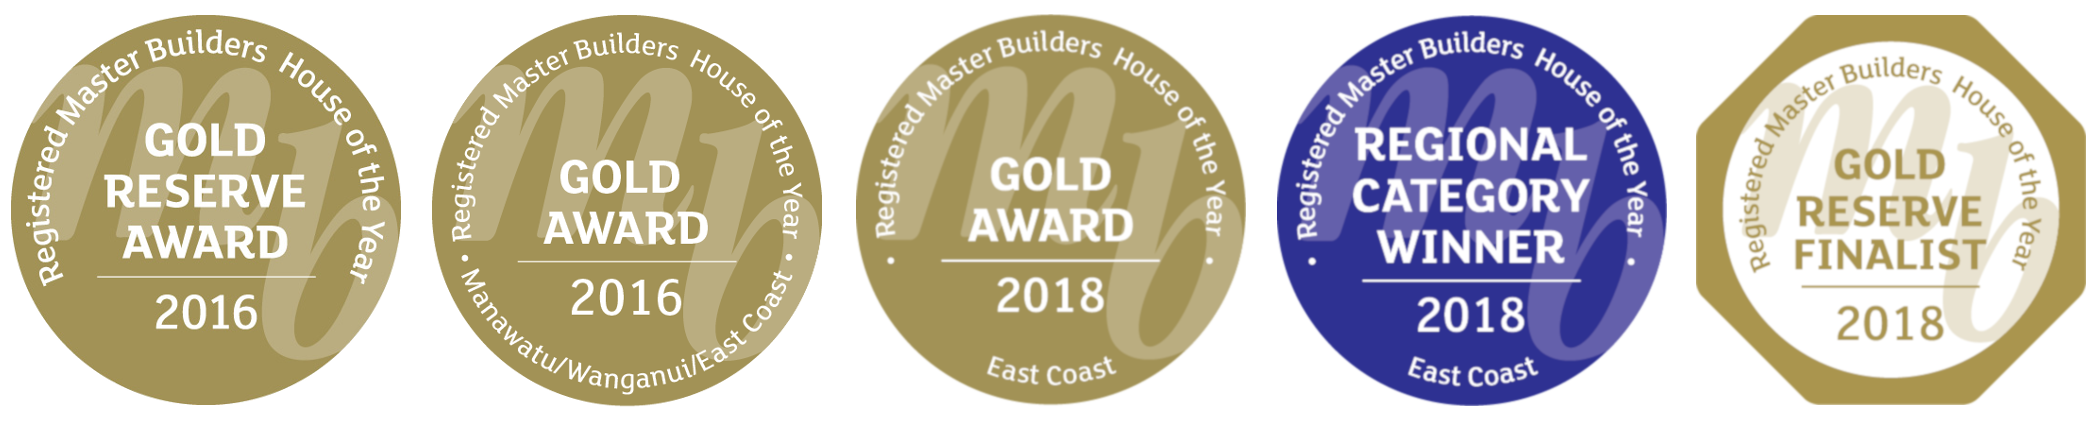 Master Builder House of the Year Gold Award